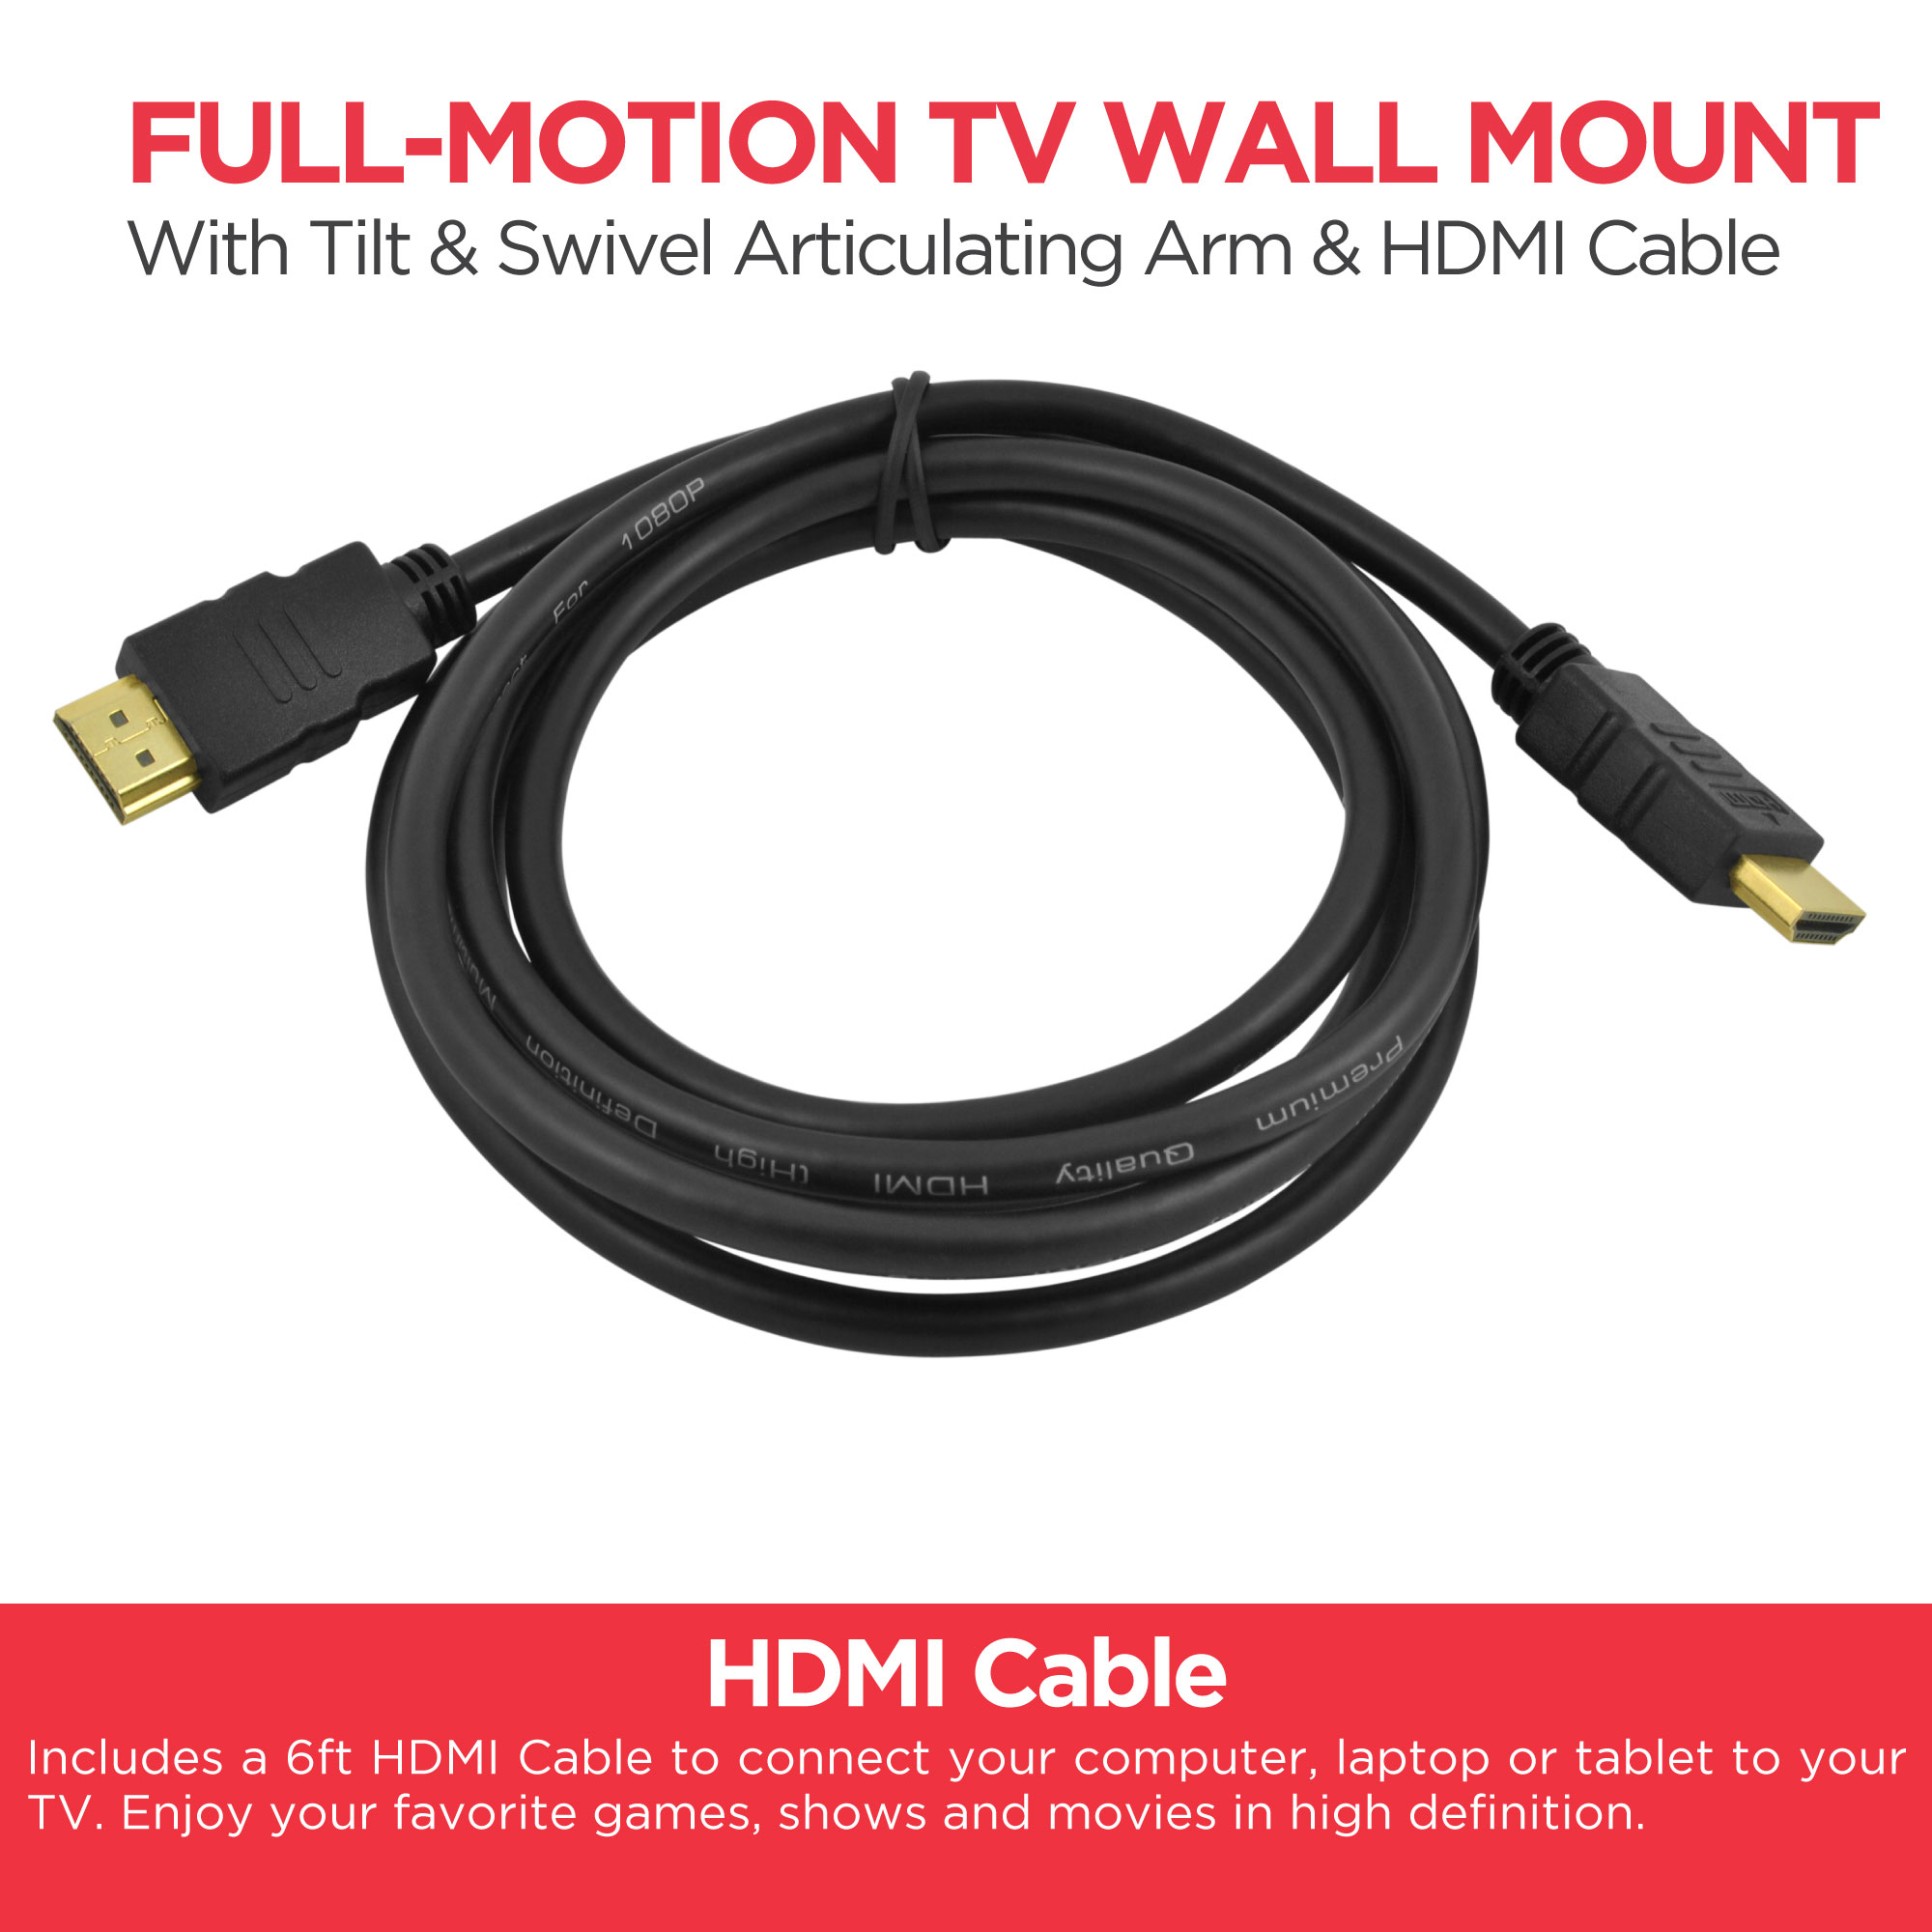 Ematic 10 49 Full Motion Articulating Tv Wall Mount With Hdmi Wiring Accessories Cable